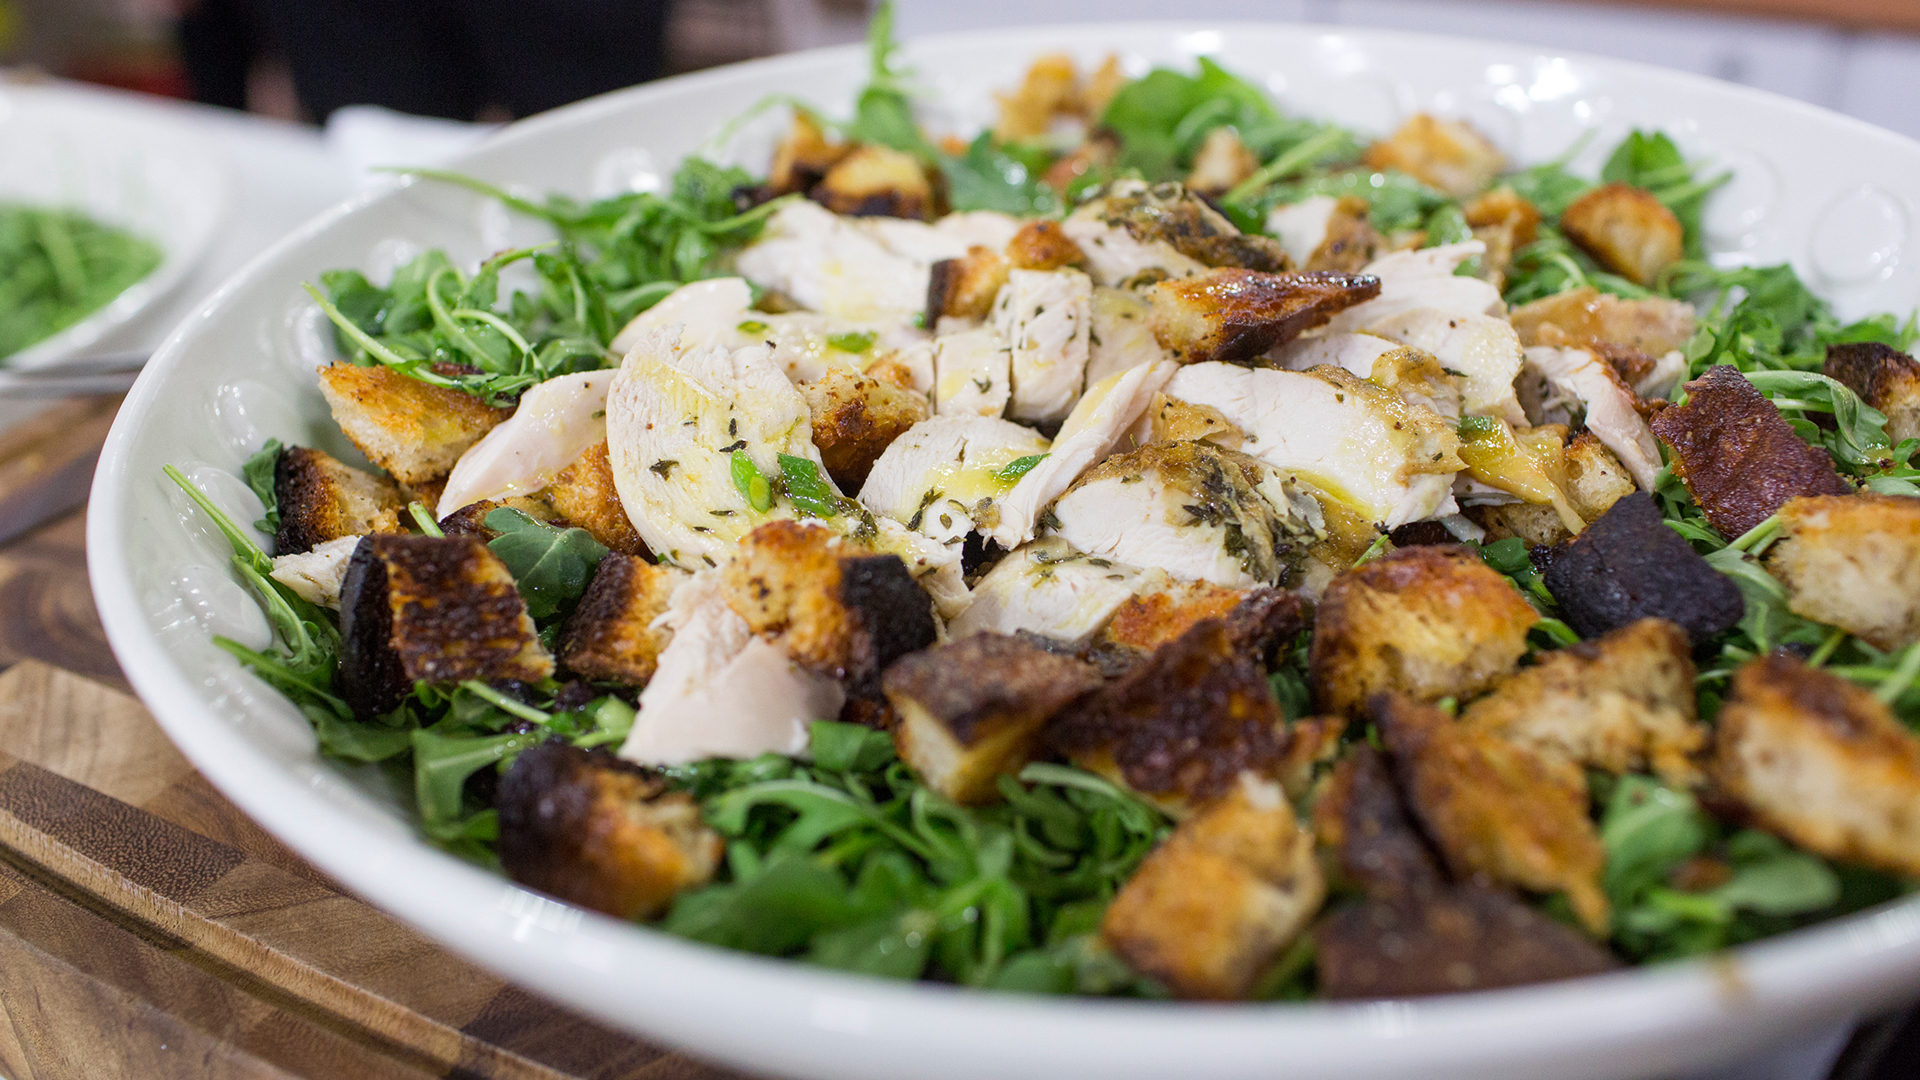 roast chicken over bread and arugula salad - today